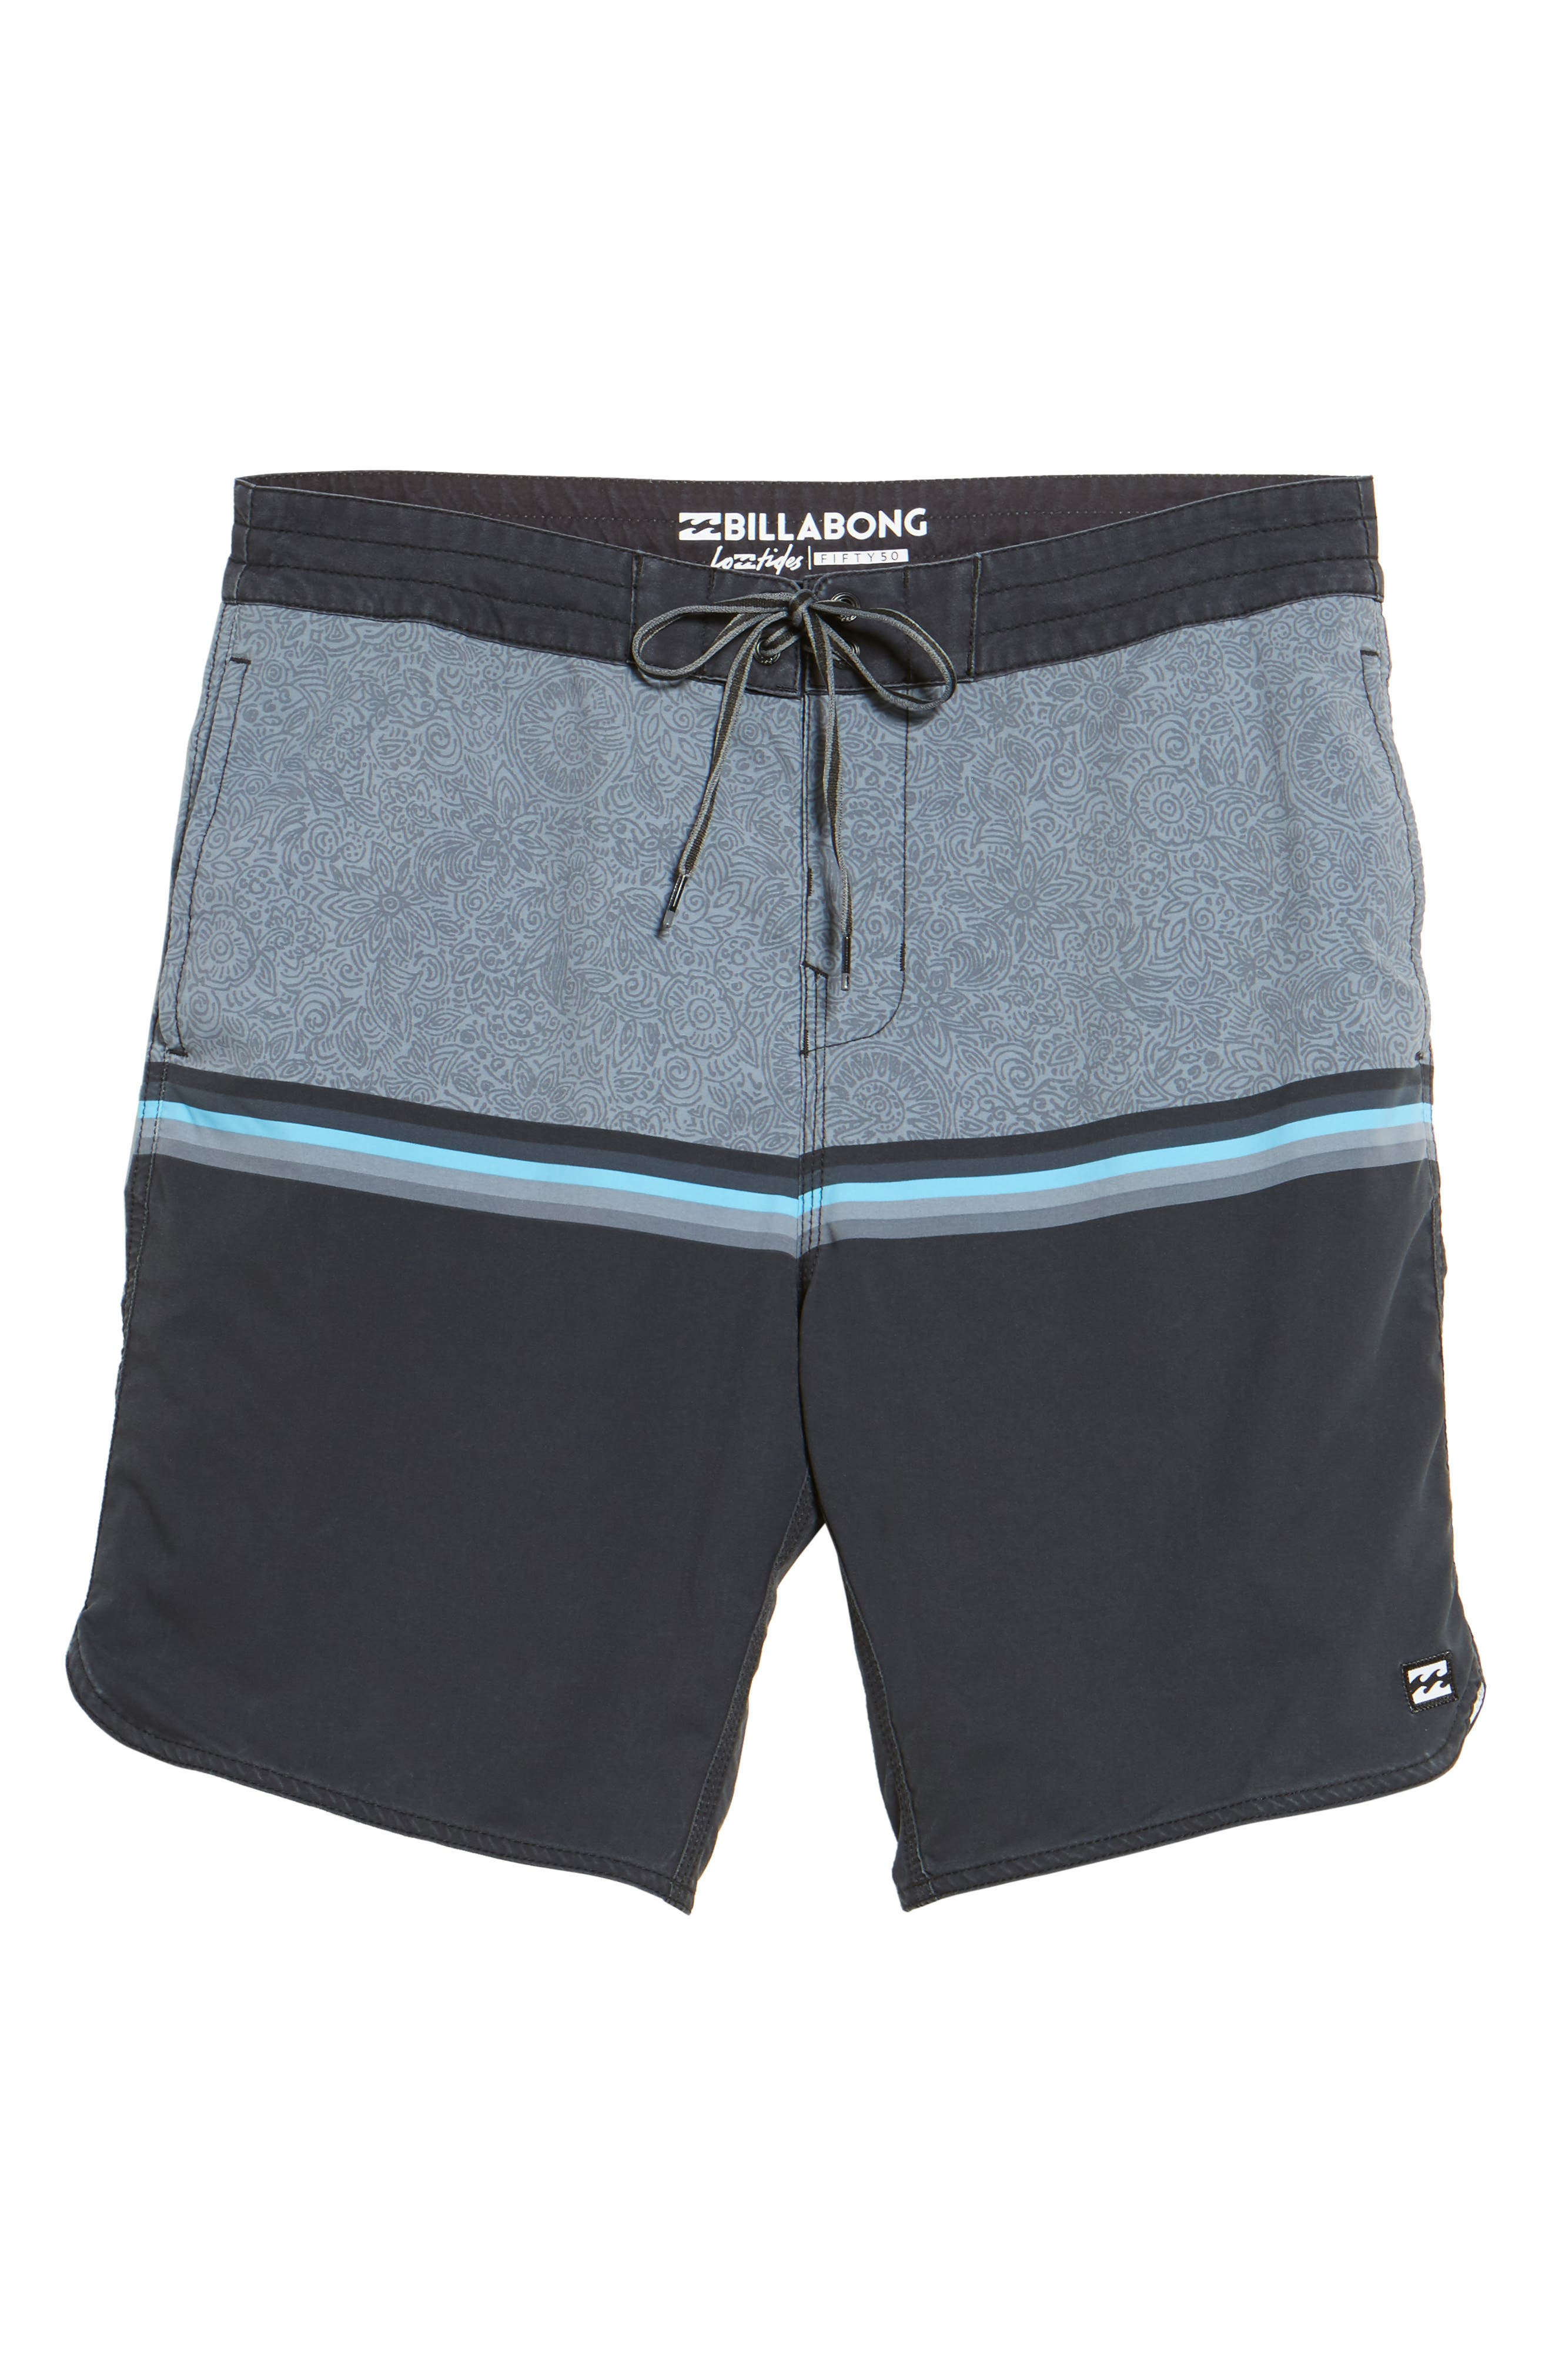 Fifty50 Low Tide Swim Trunks,                             Alternate thumbnail 26, color,